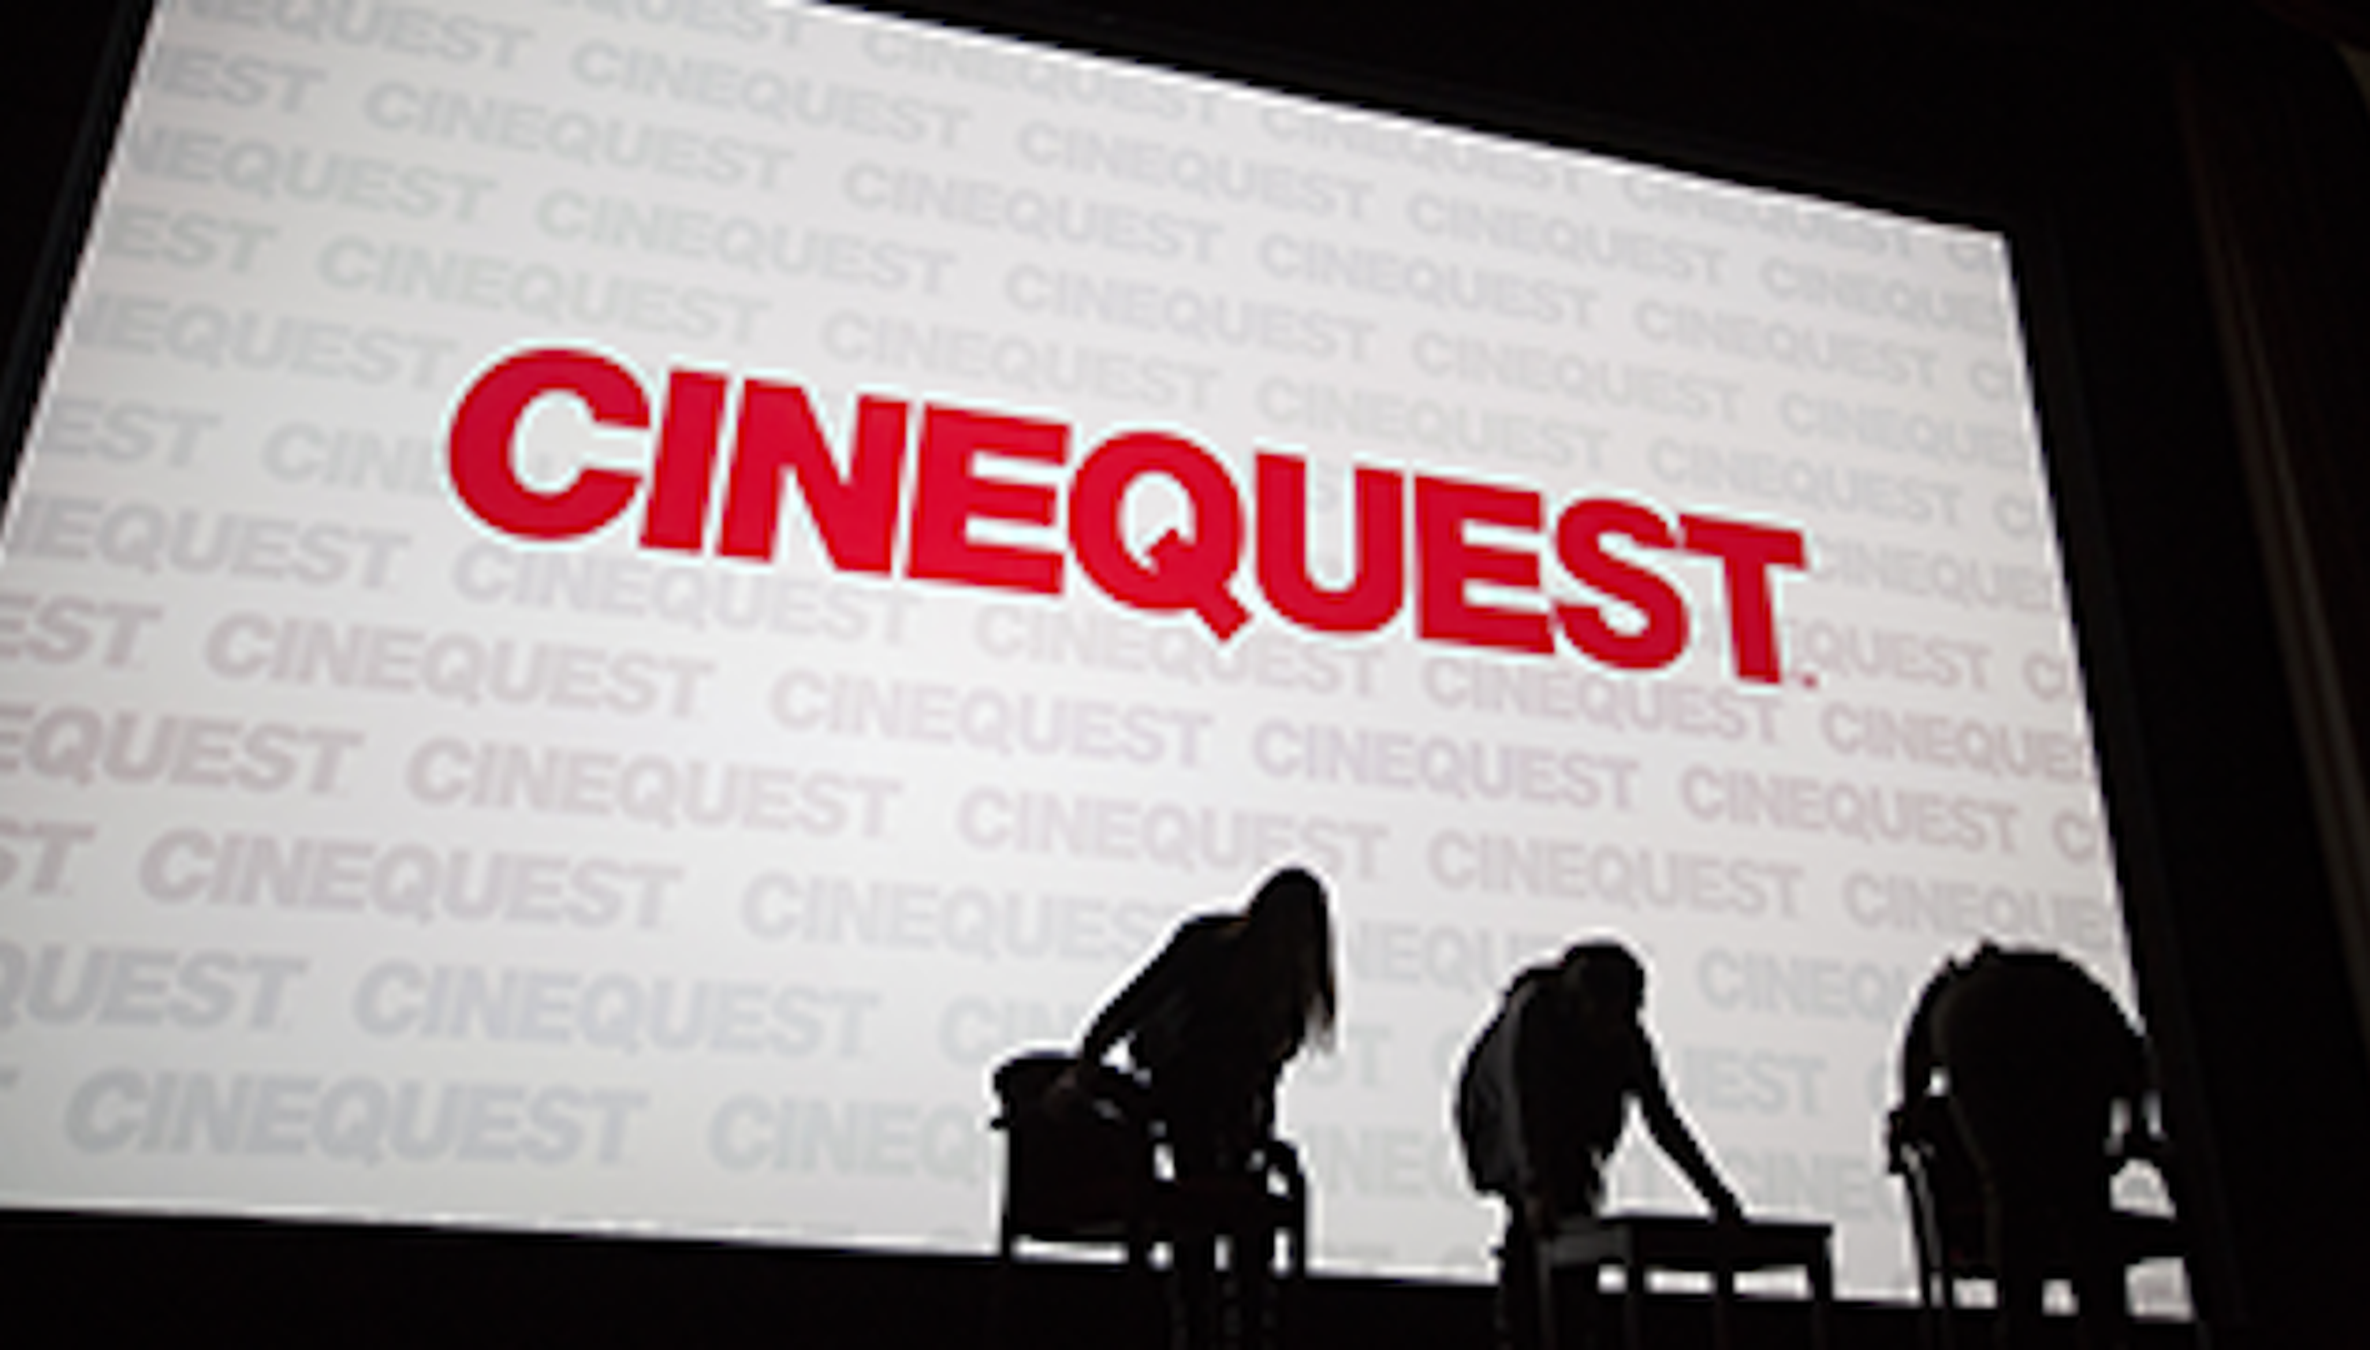 Cinequest Film Festival: Where Cutting-Edge Tech and